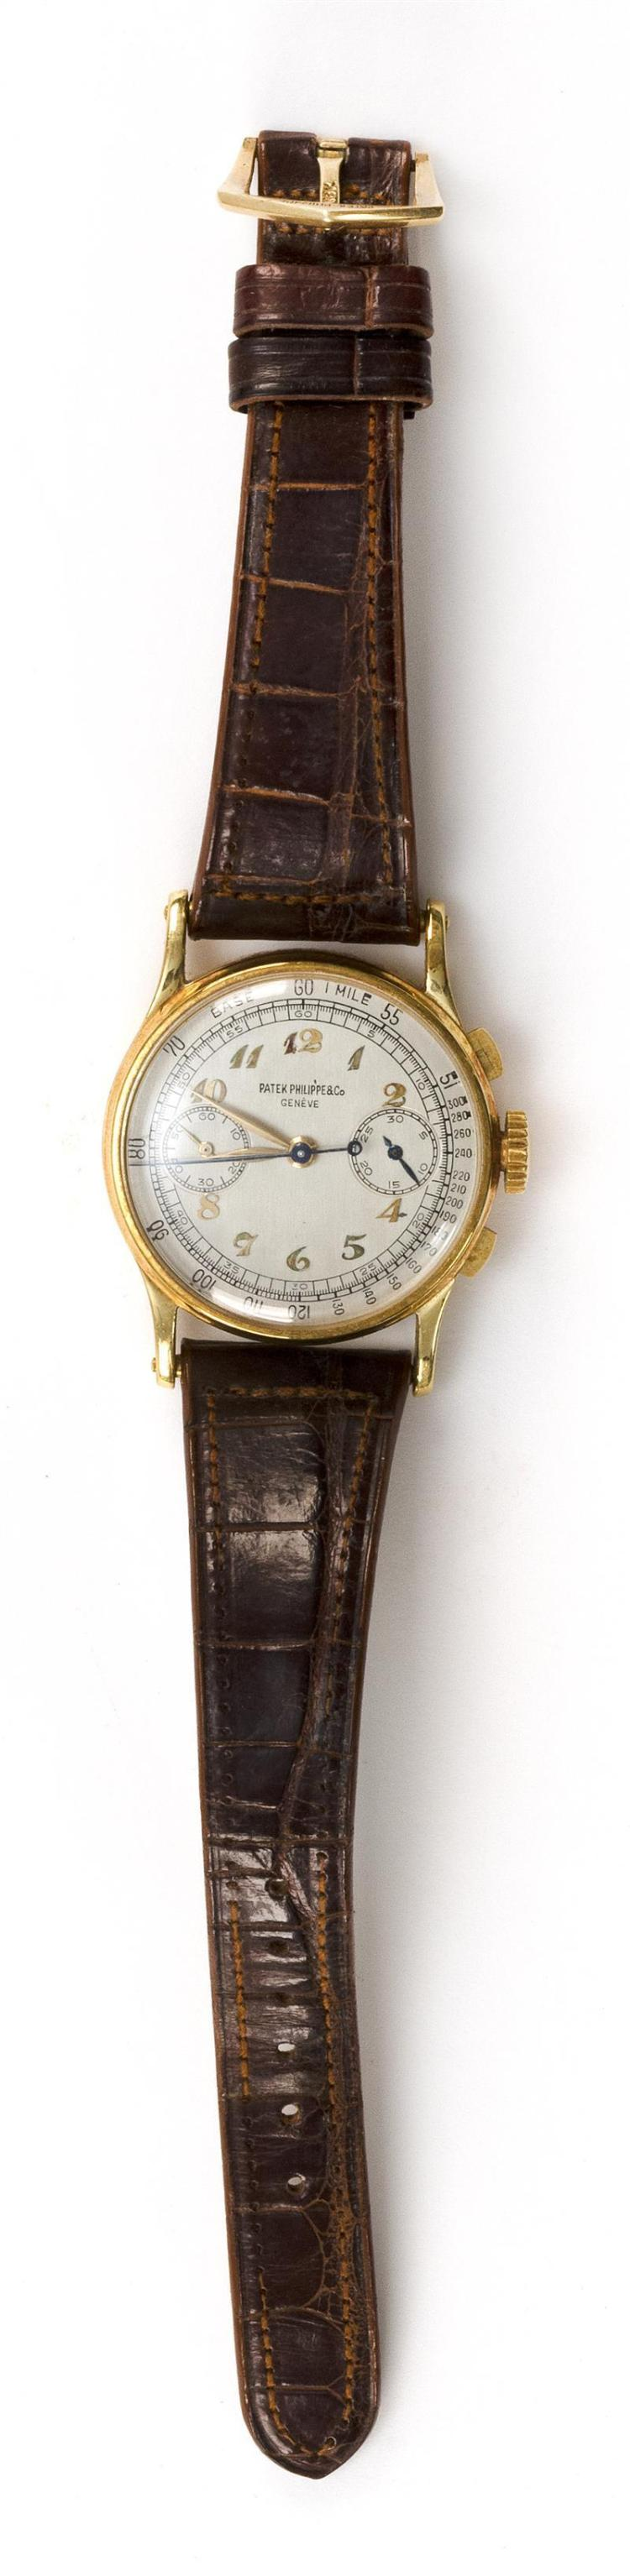 PATEK PHILIPPE 18KT GOLD CHRONOGRAPH WRIST WATCH Case number 646707. REF. 1436. Movement number 863789. Nickel-finished twenty-five...